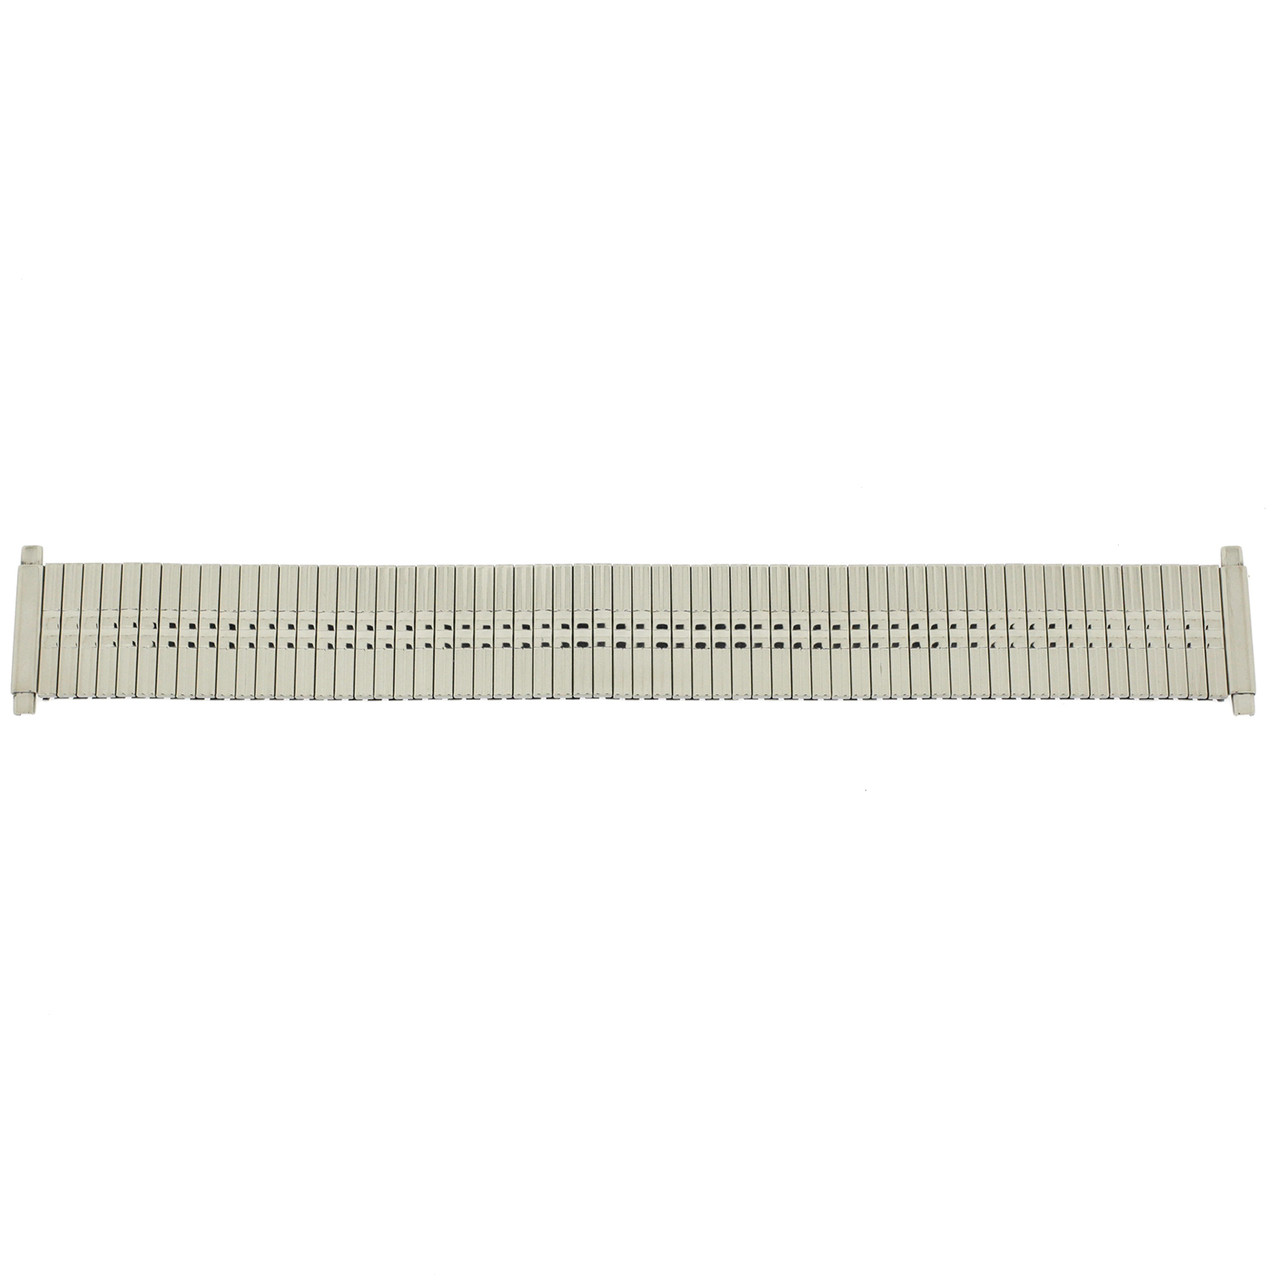 Watch Band Expansion Metal Stretch Silver Color Thin Line fits 17-21mm - Main